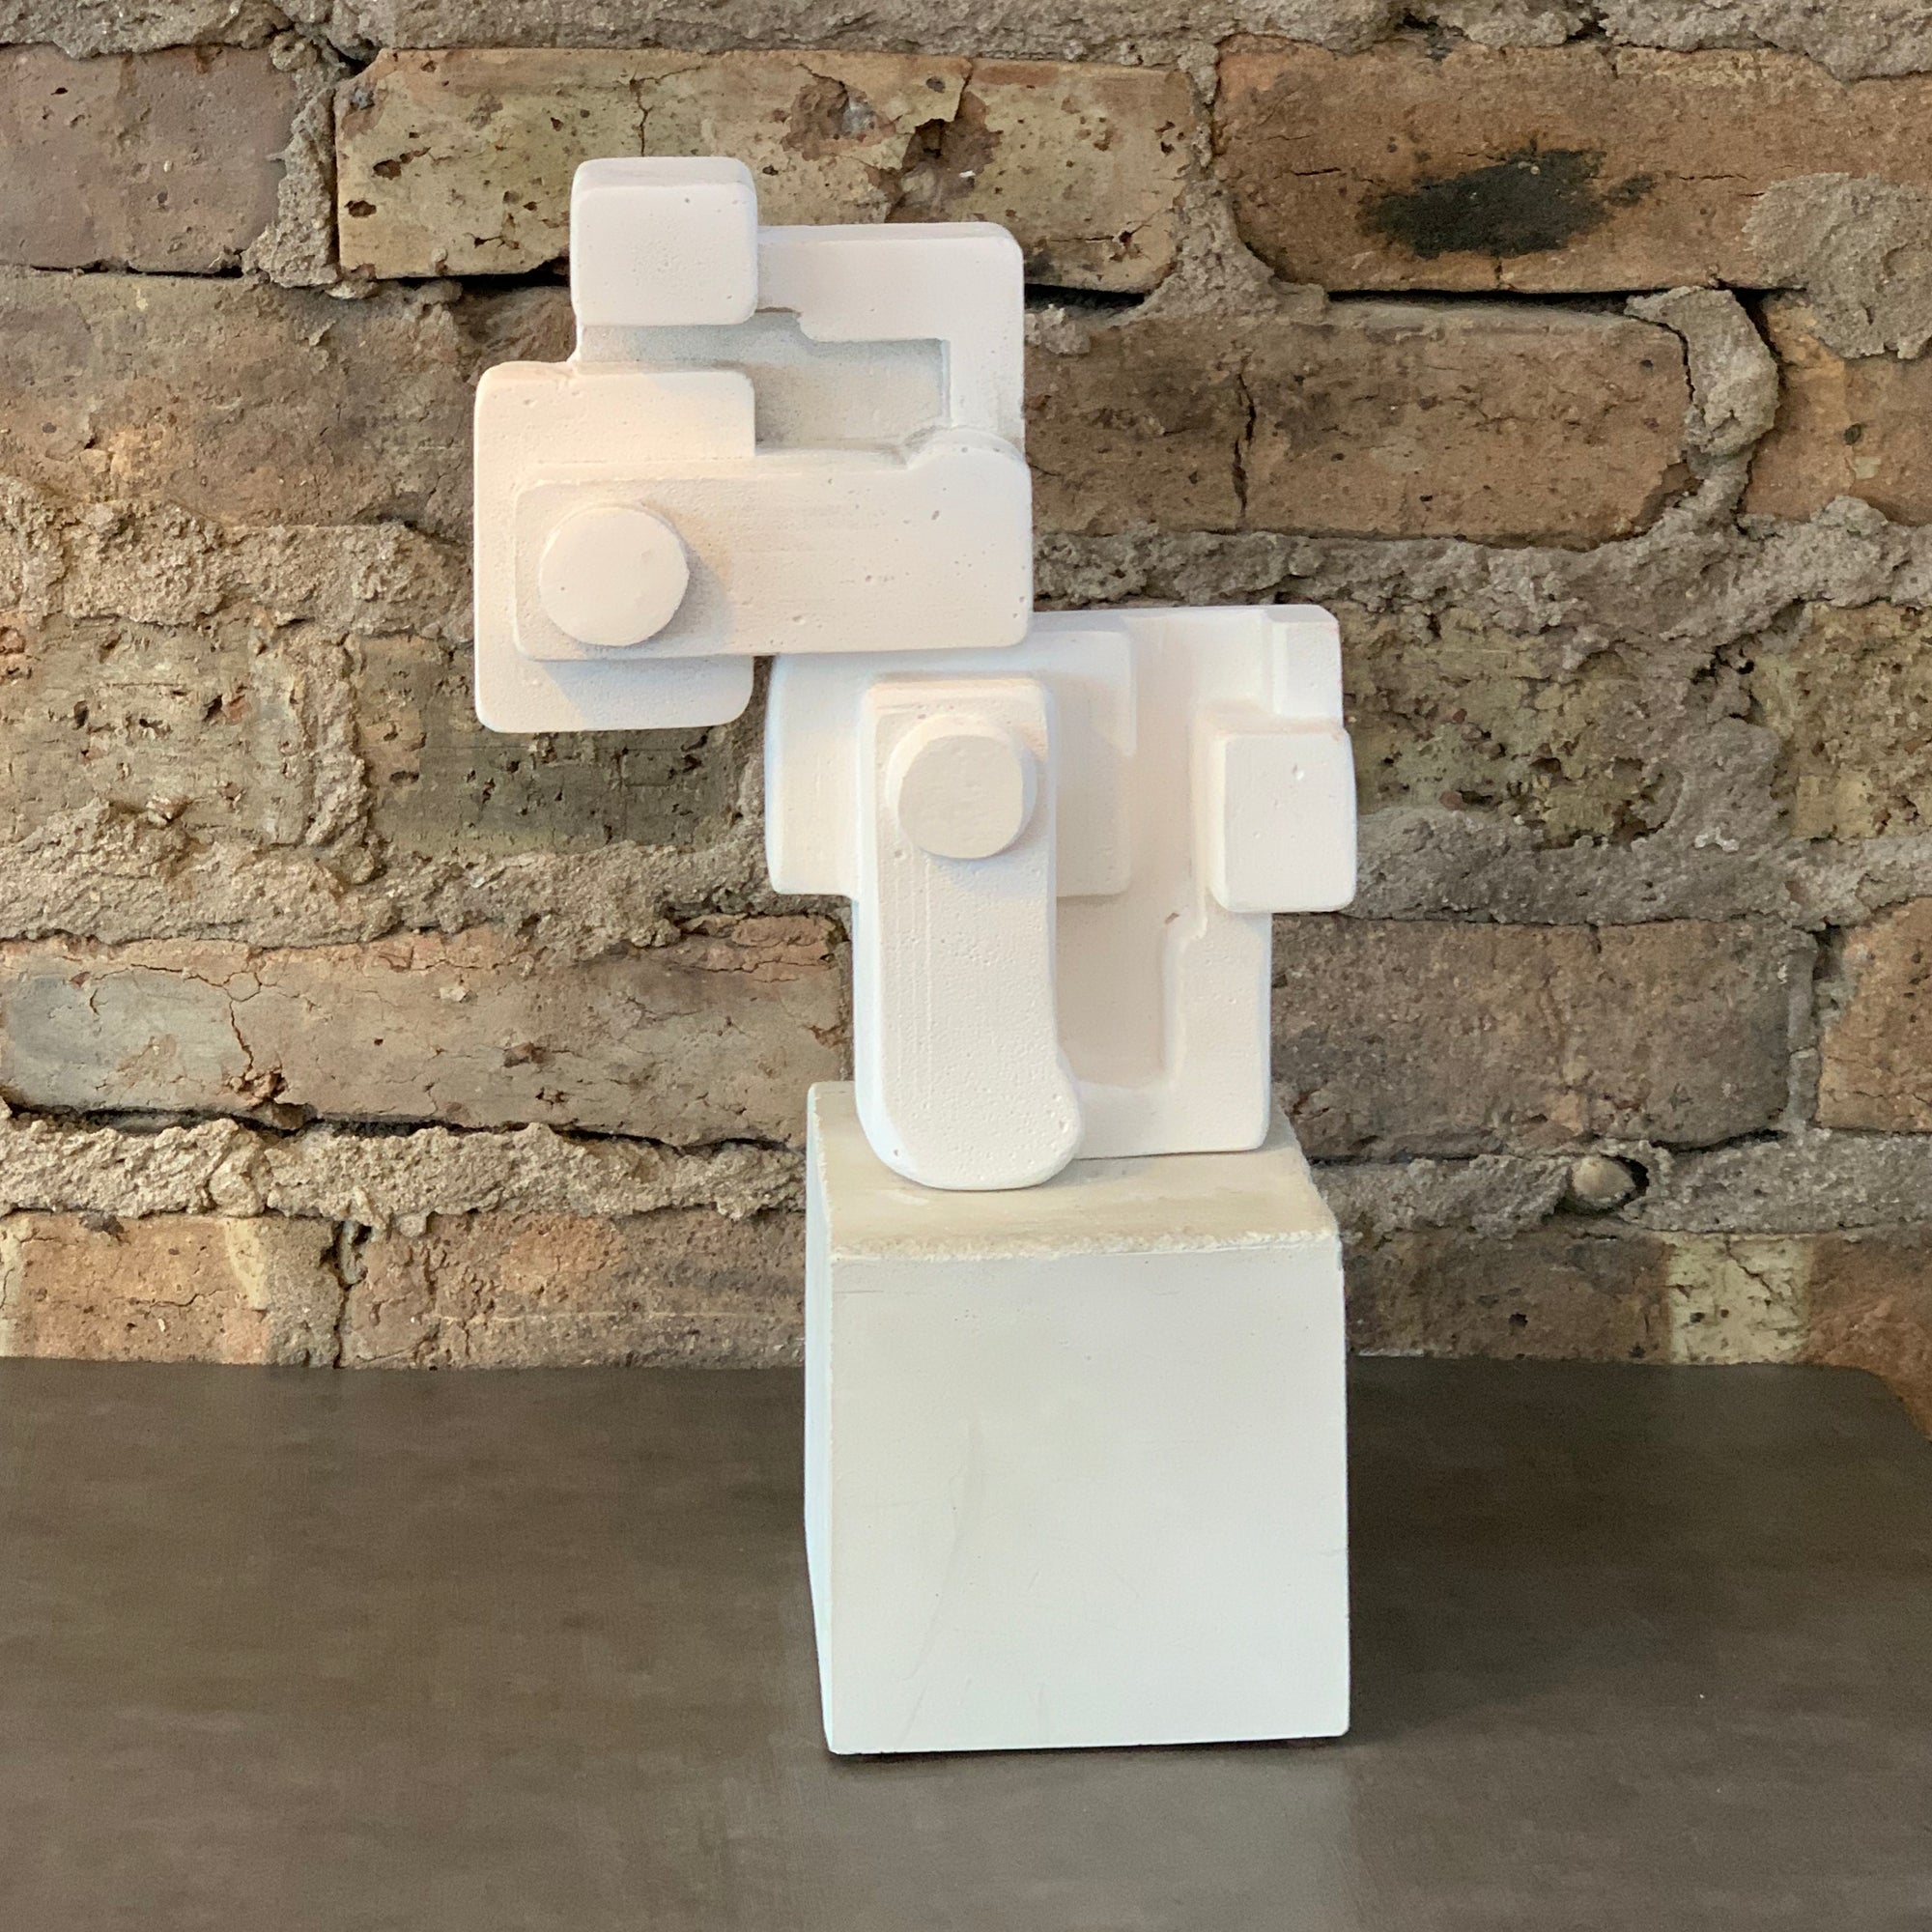 Coupling Brutalist Sculpture by Larry Fulton